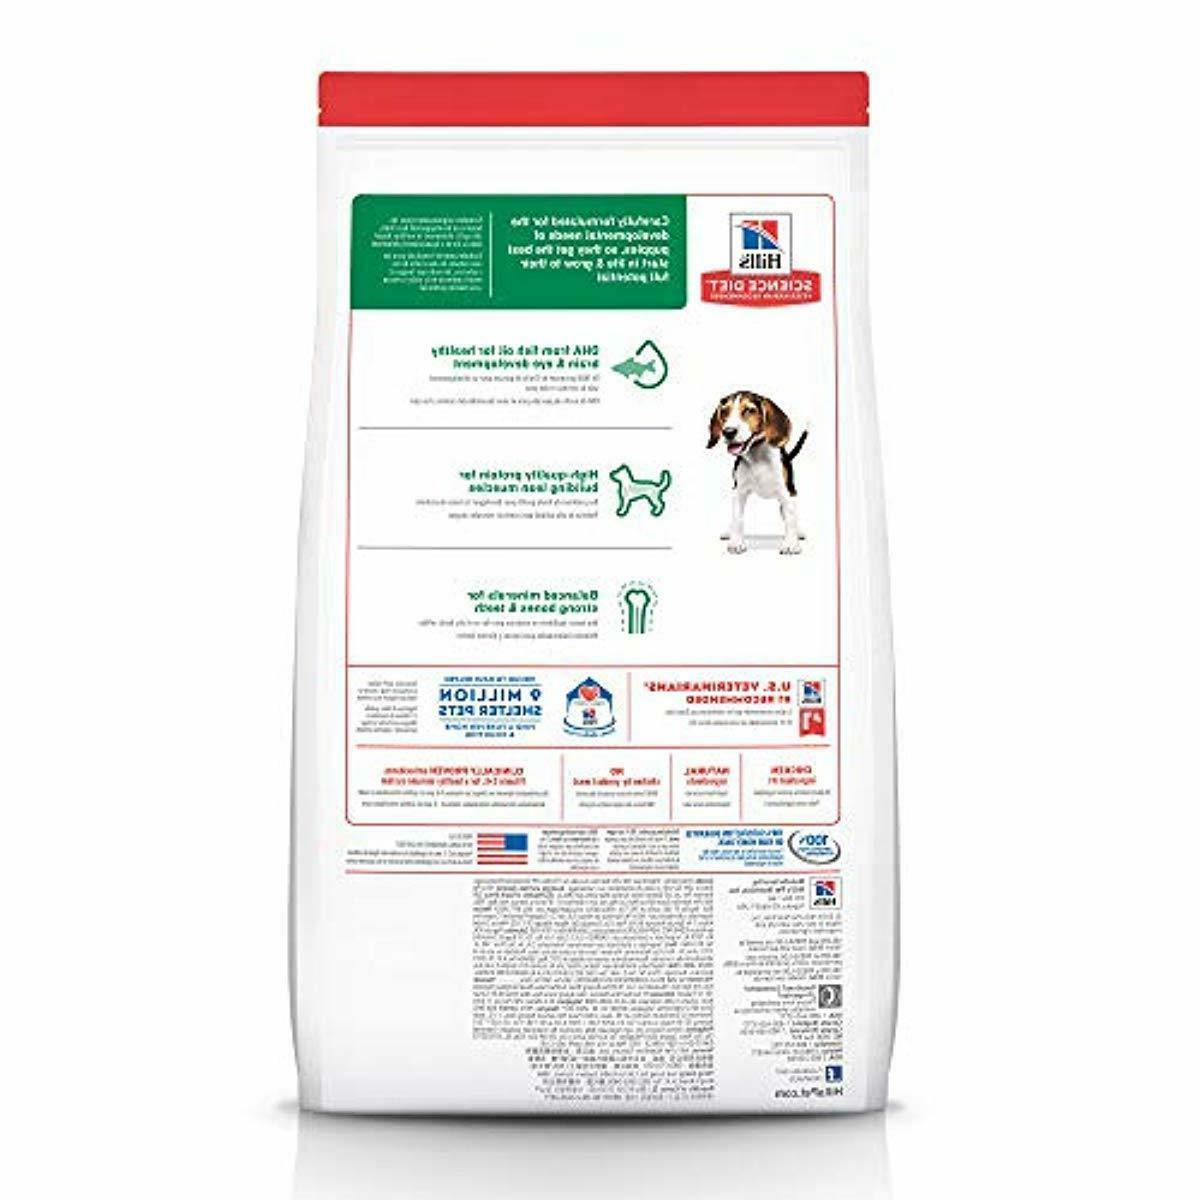 Hill's Dog Food, Meal